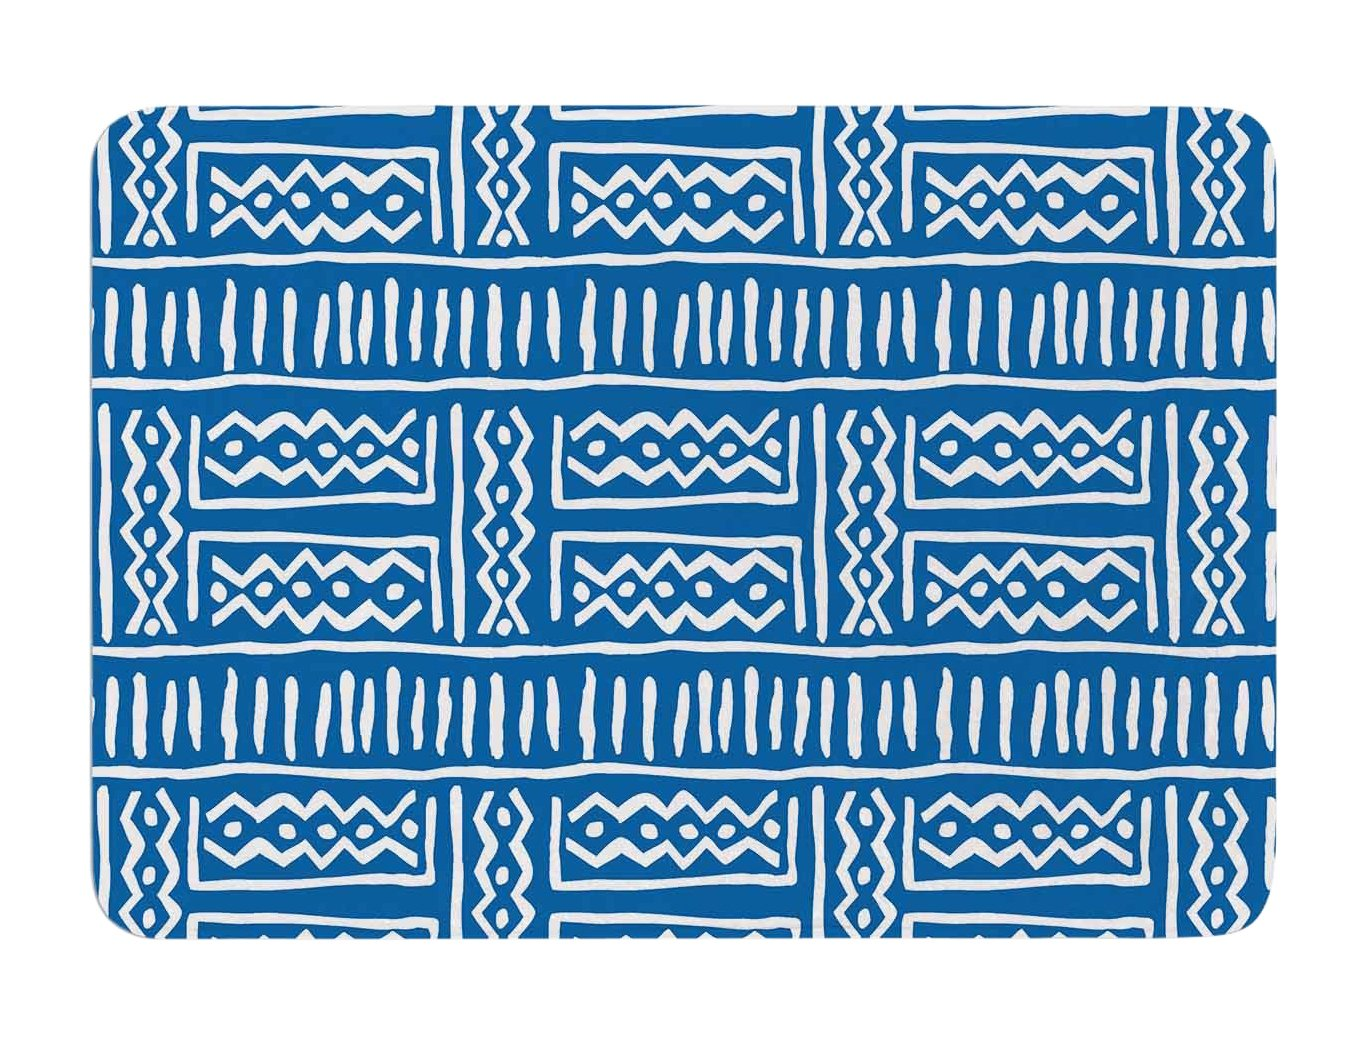 24 X 36 24 by 36-Inch Kess InHouse Dan Sekanwagi Lines and Zigzags Blue Tribal Memory Foam Bath Mat